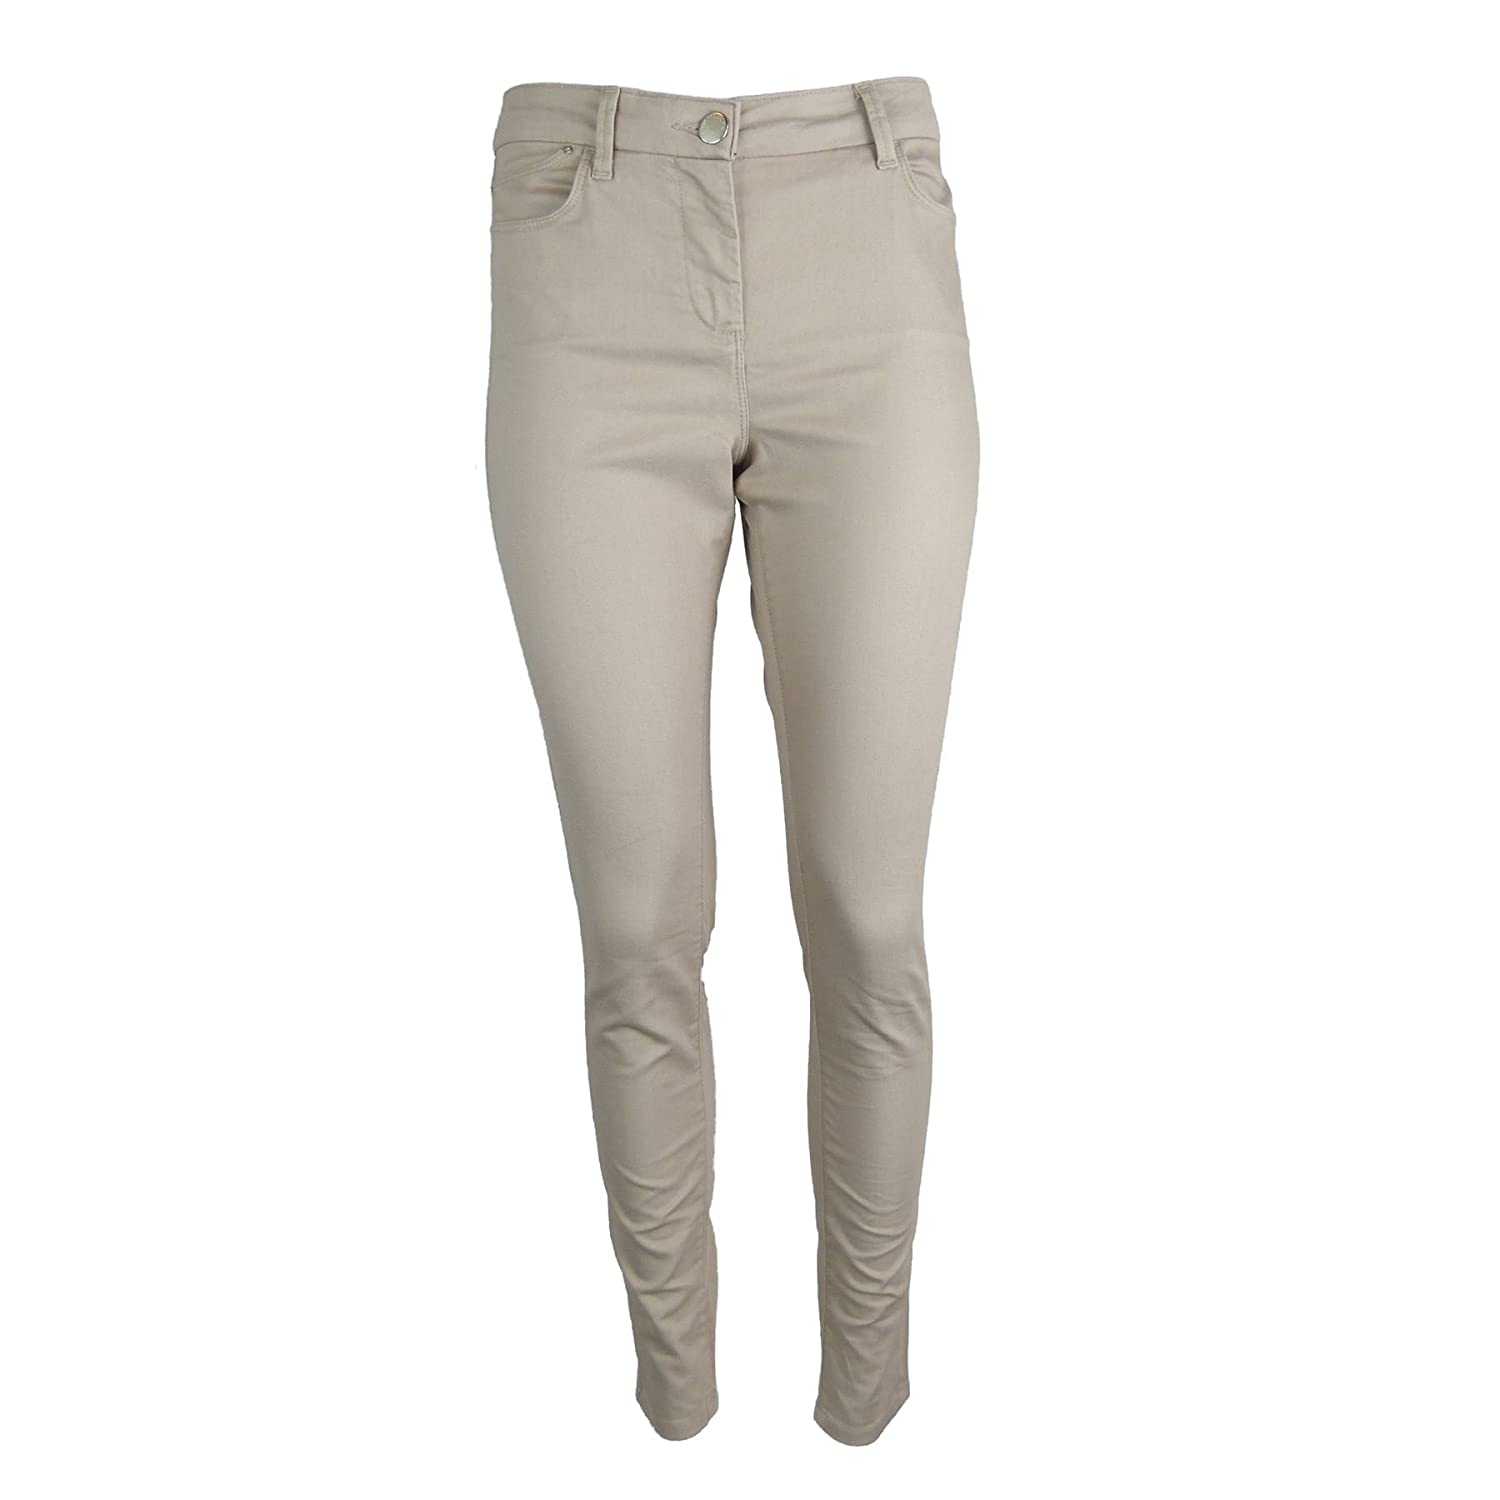 0264b08f0ce Marks and Spencer EX M S Cotton Rich Skinny Fit Jeans Jeggings (UK 8-20)   Amazon.co.uk  Clothing